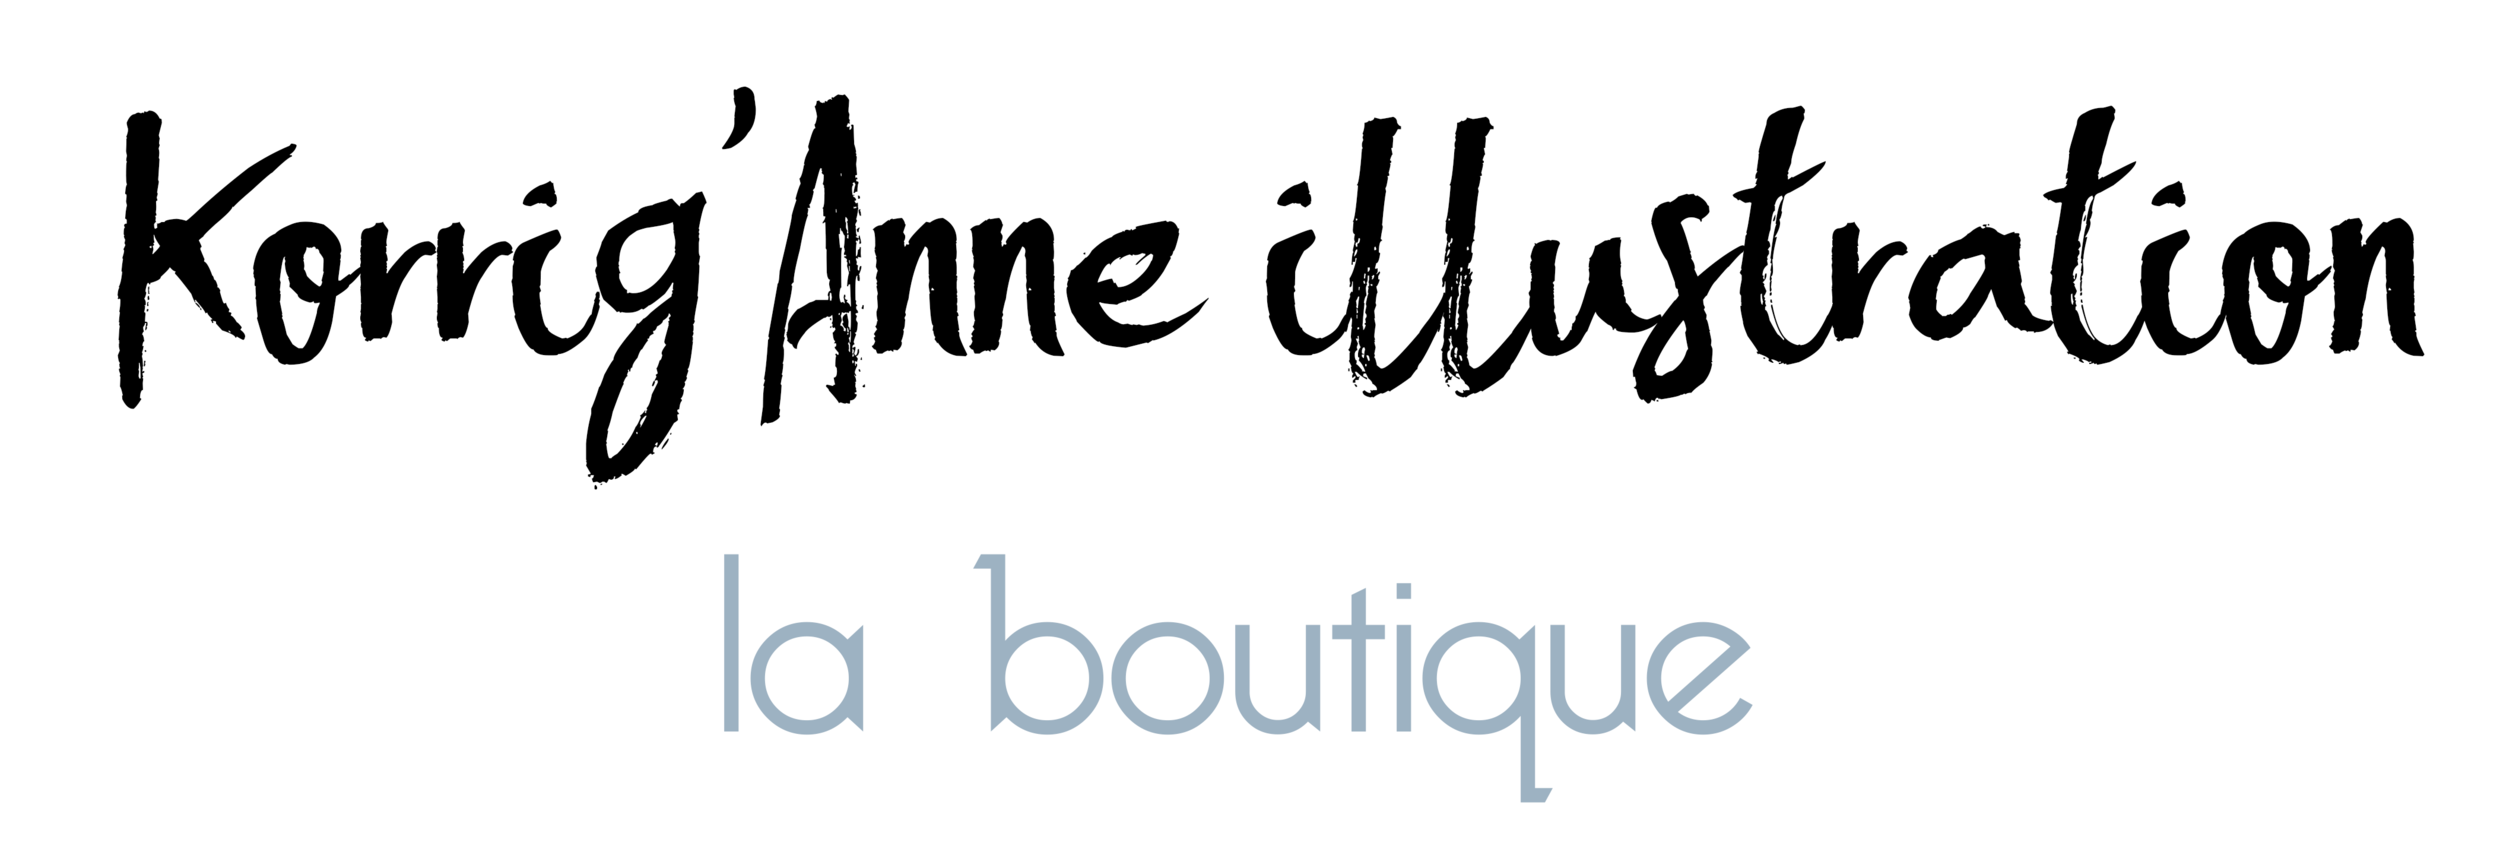 la-boutique-korrig-anne